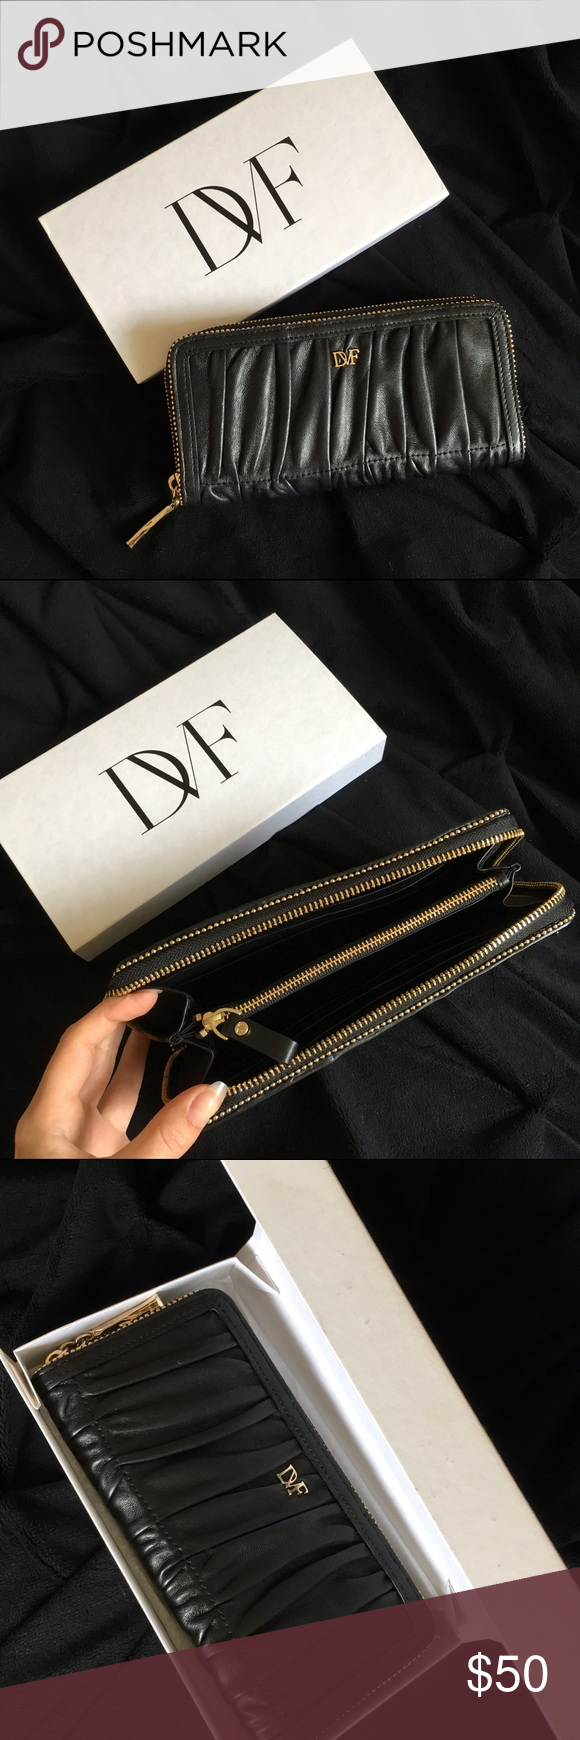 Diane von Furstenberg Anna Black Ruched Clutch Black leather clutch with gold metal detail at zip. Barely used. Wallet/checkbook size. Has card slots and a zippered pouch inside with DVF monogram fabric. Also has authenticity tag inside. Diane von Furstenberg Bags Clutches & Wristlets